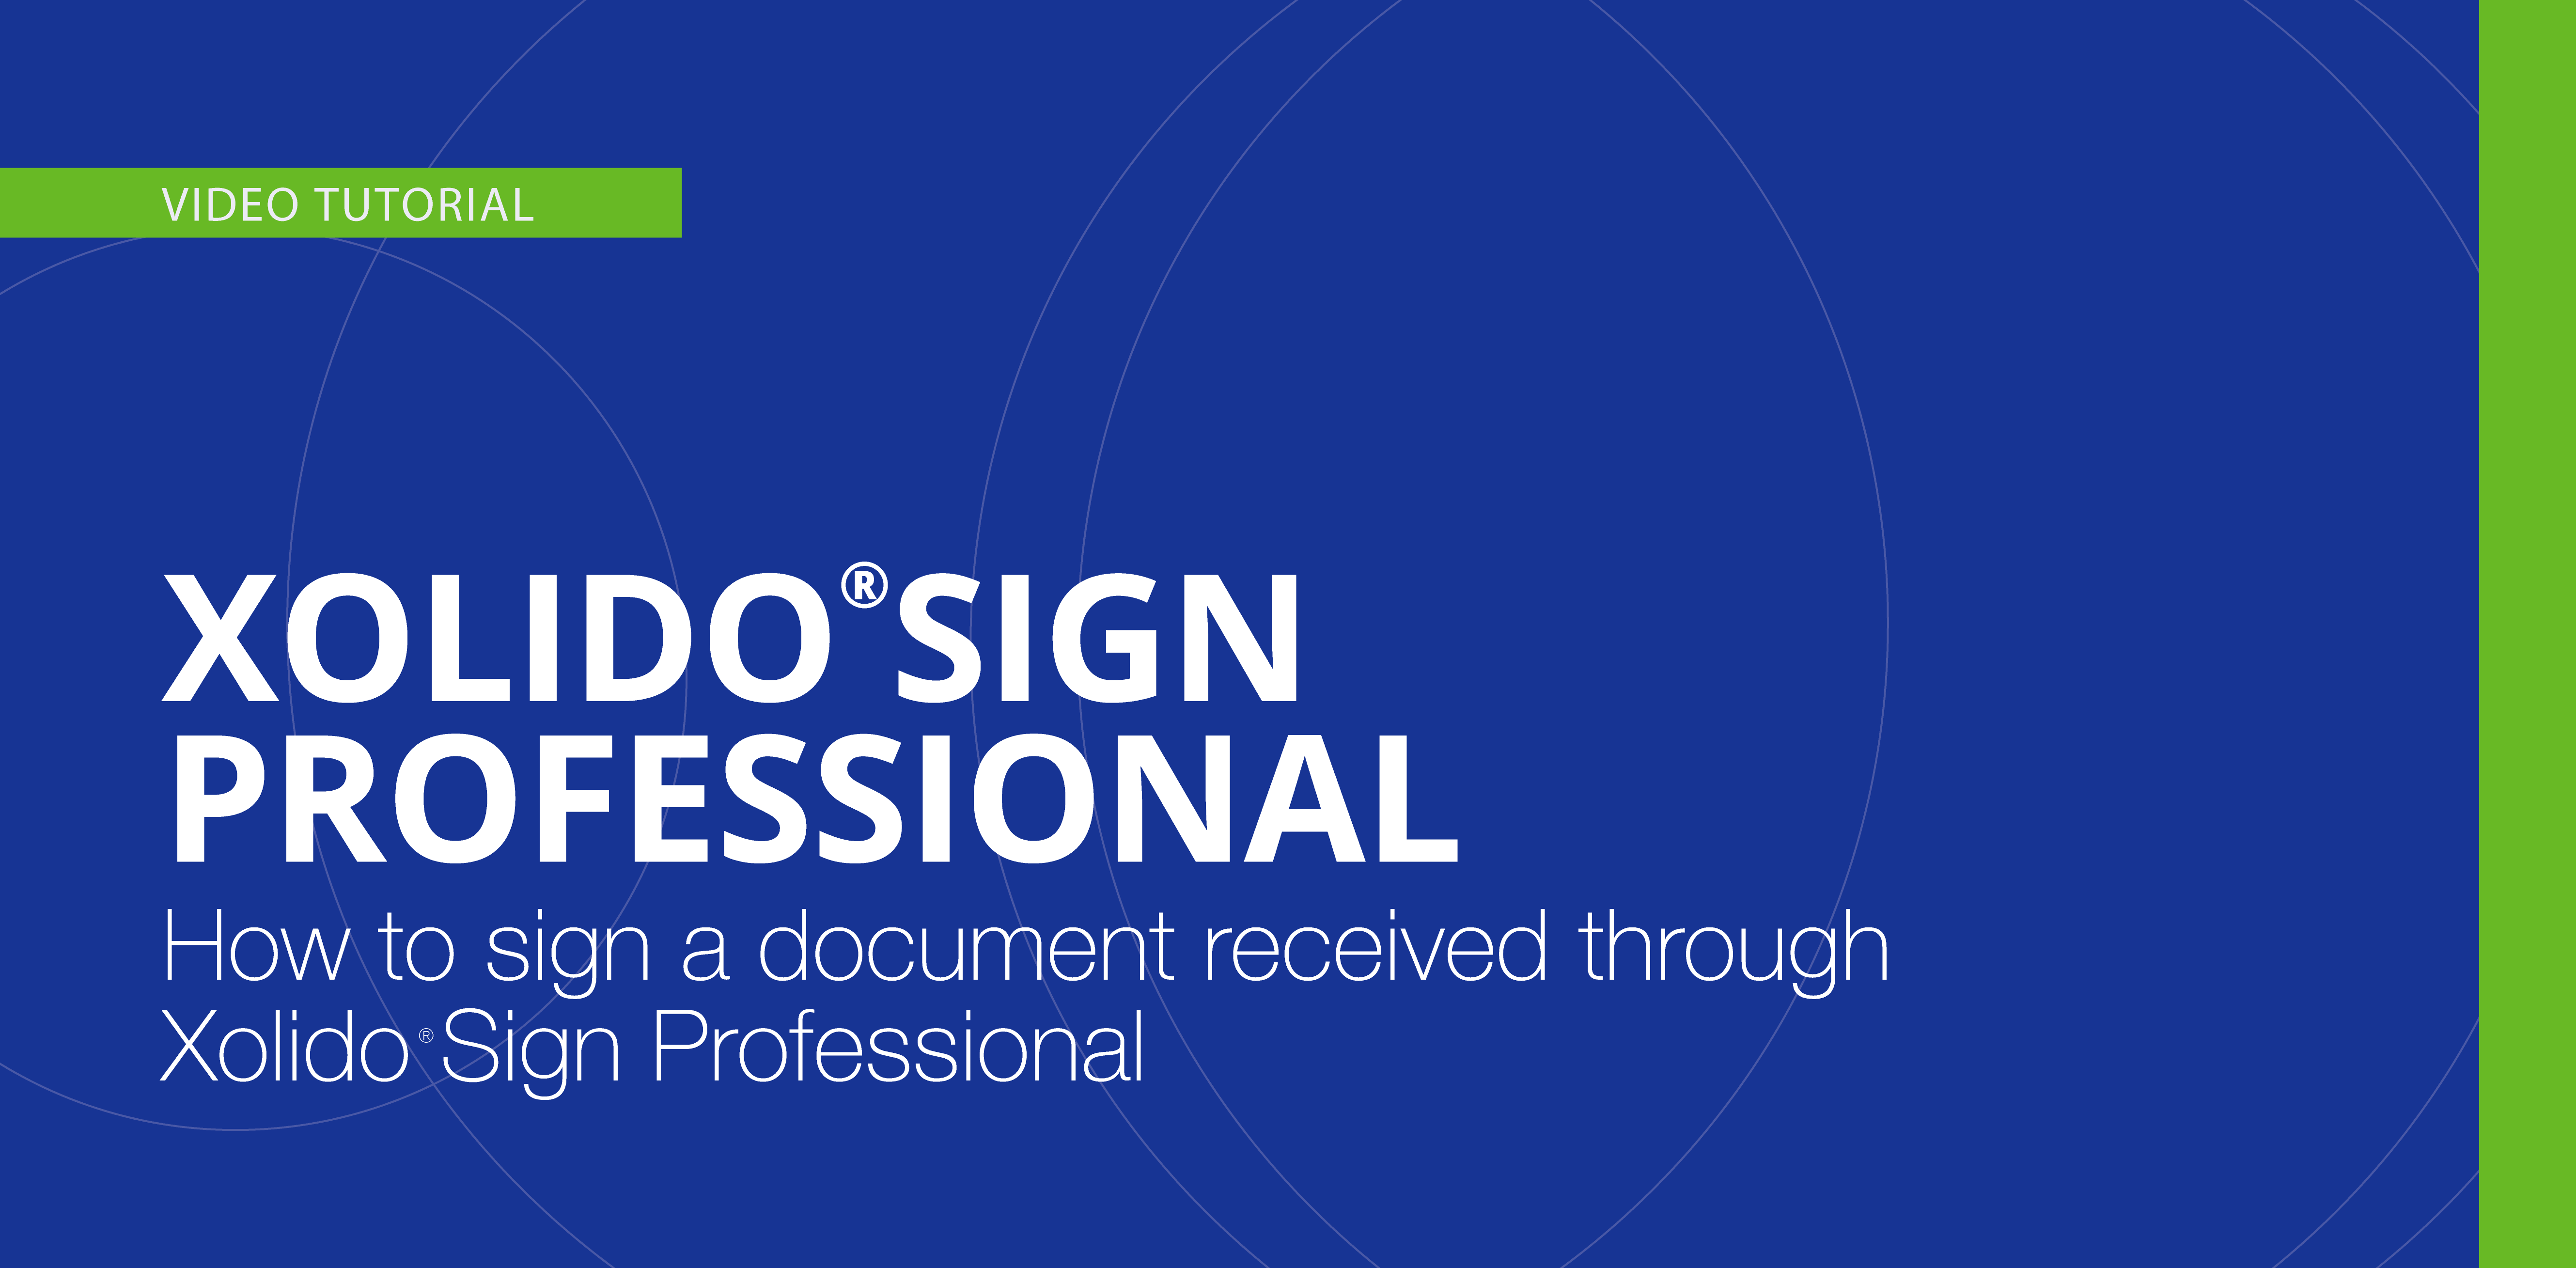 How to sign a document received through Xolido®Sign Professional